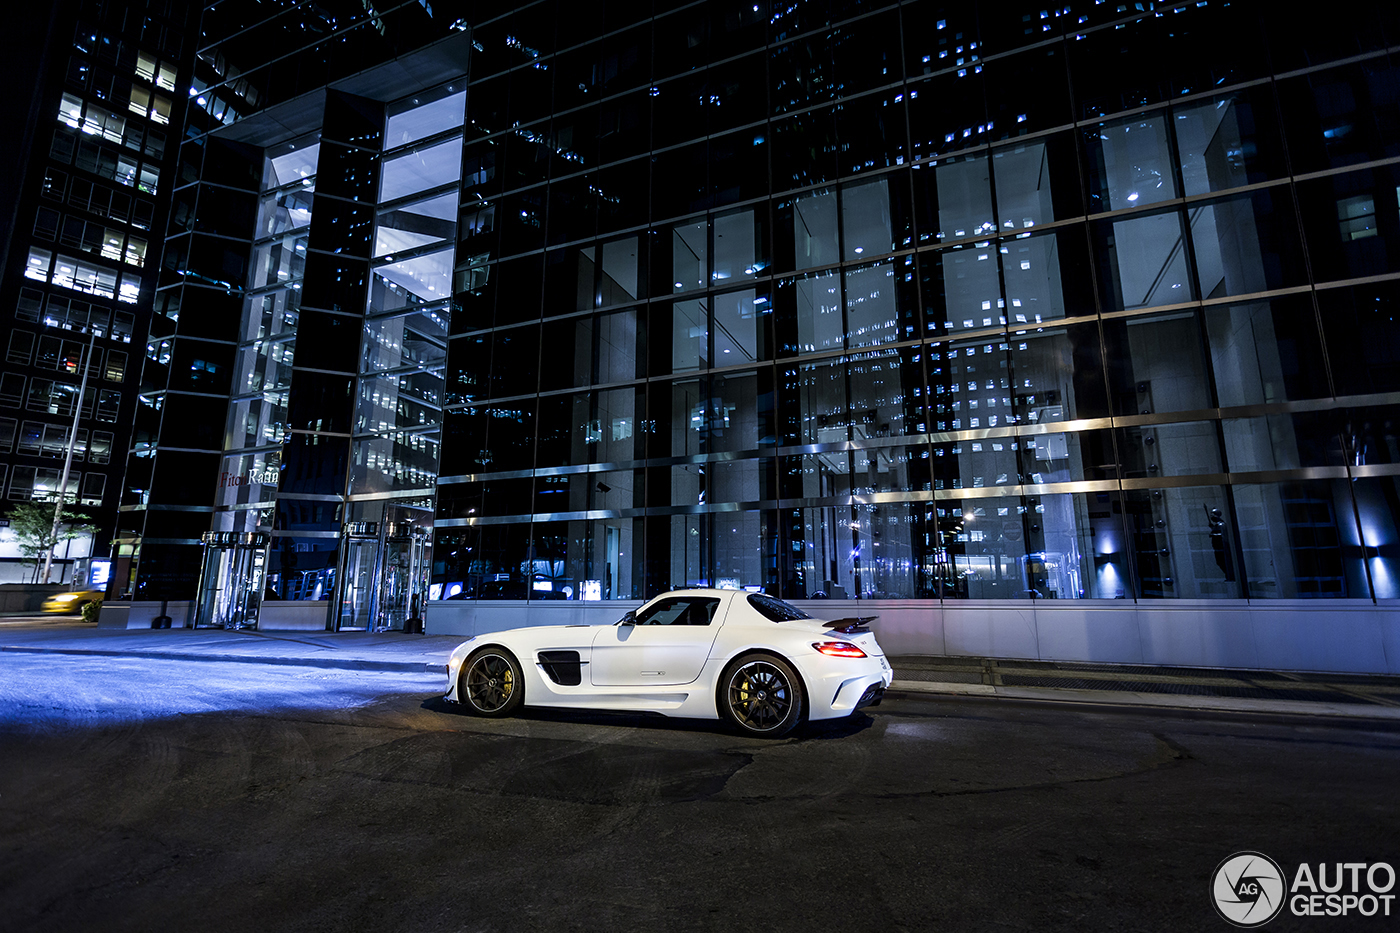 Mercedes benz sls amg black series in new york city at night for Mercedes benz of oklahoma city